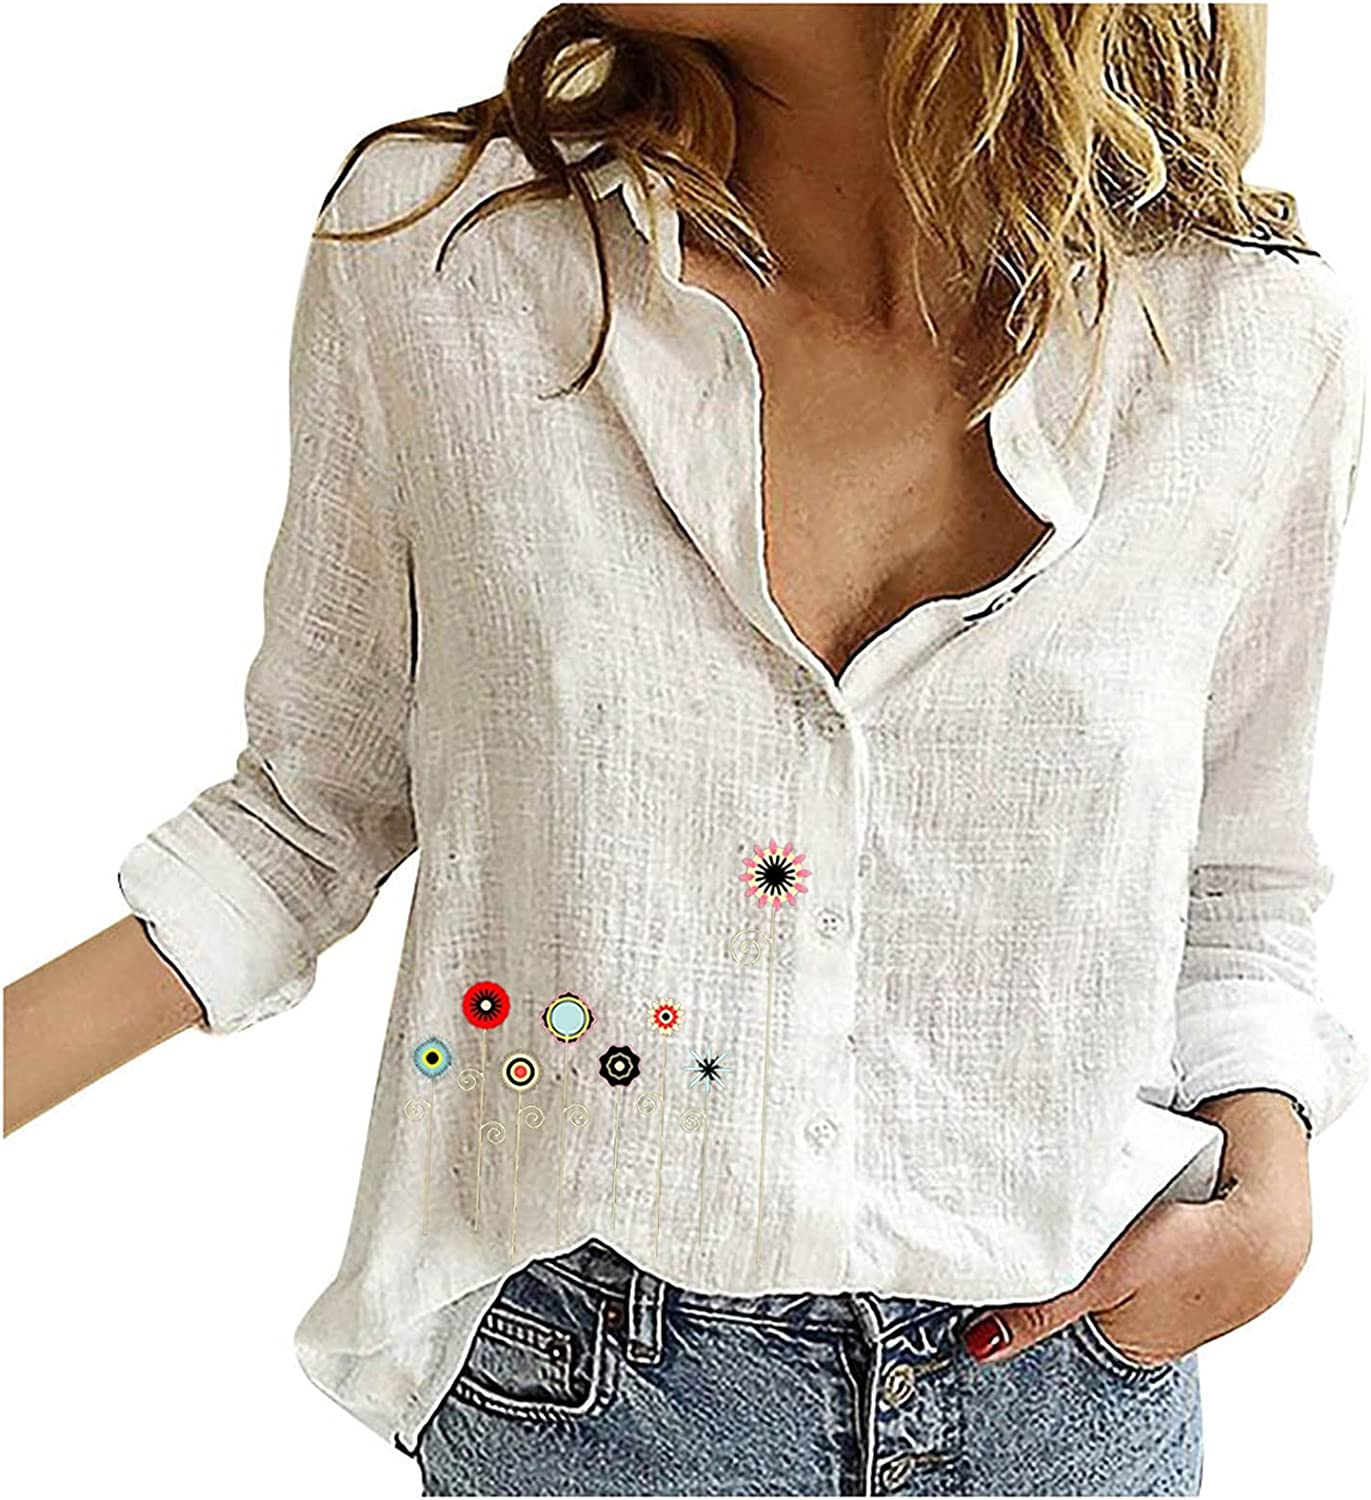 Fall Clothes for Women Long Sleeve Tee Shirts V-Neck Loose Fit Cotton Linen Tops Buttons Lapel Cute Printed Slim Blouses